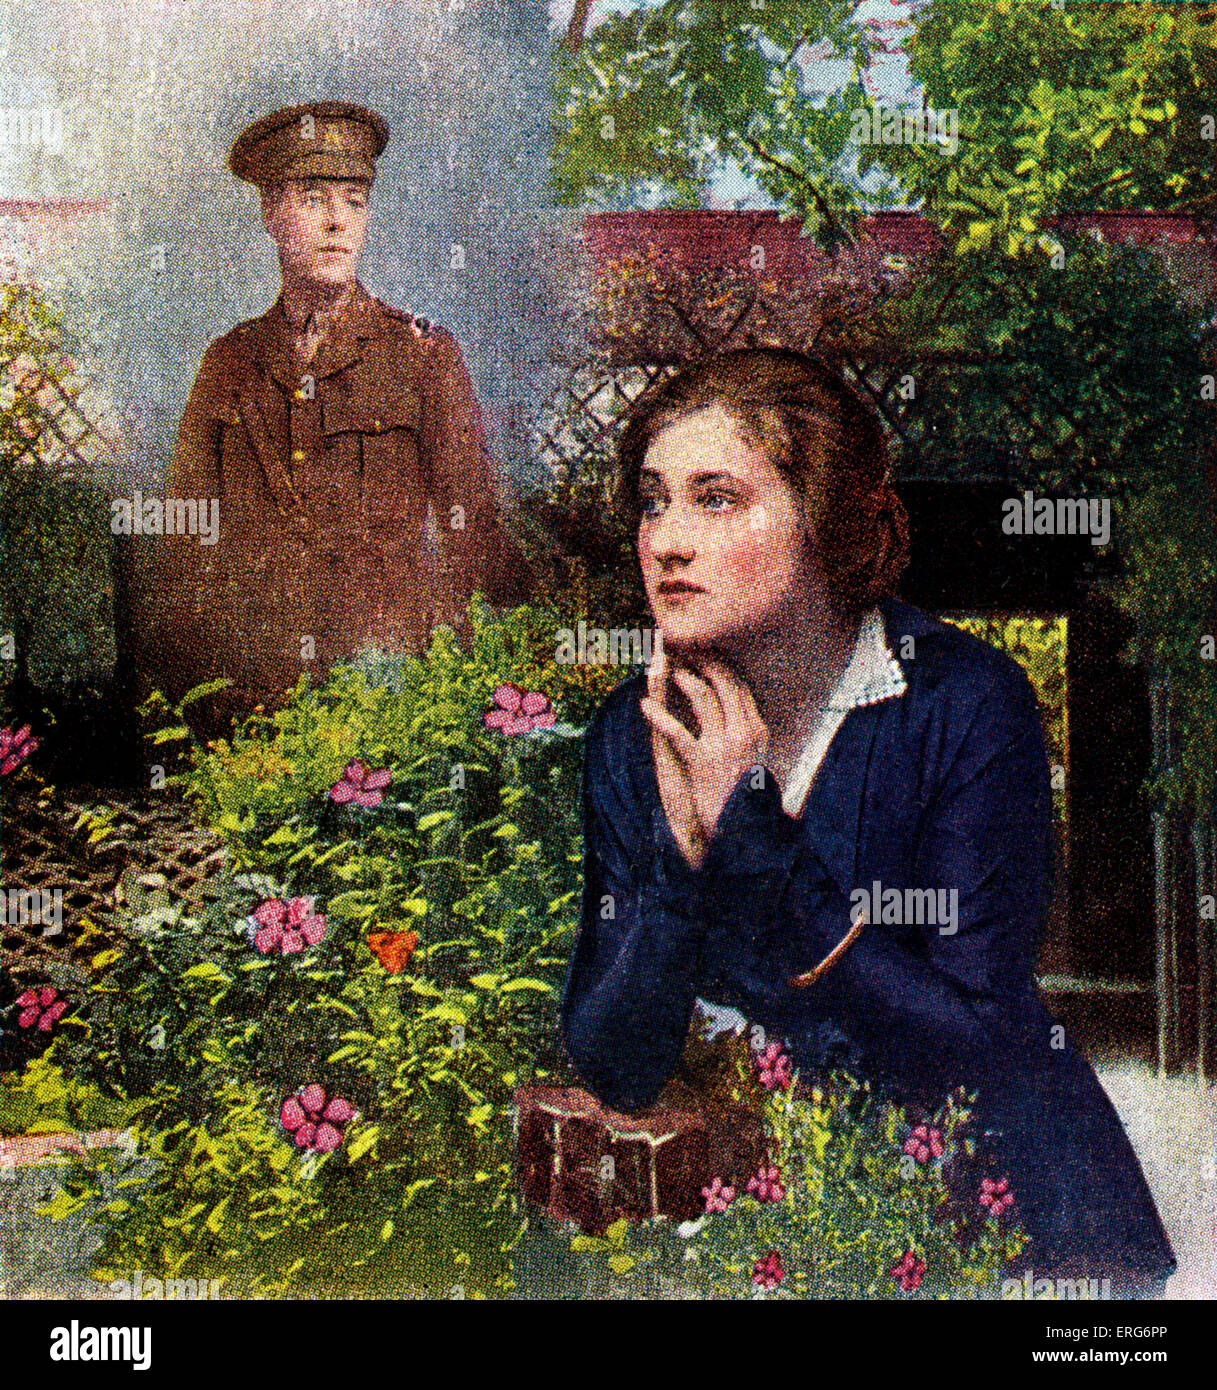 When You Come Home Wwi Postcard Lyrics Read Birds In The Garden Stock Photo Alamy